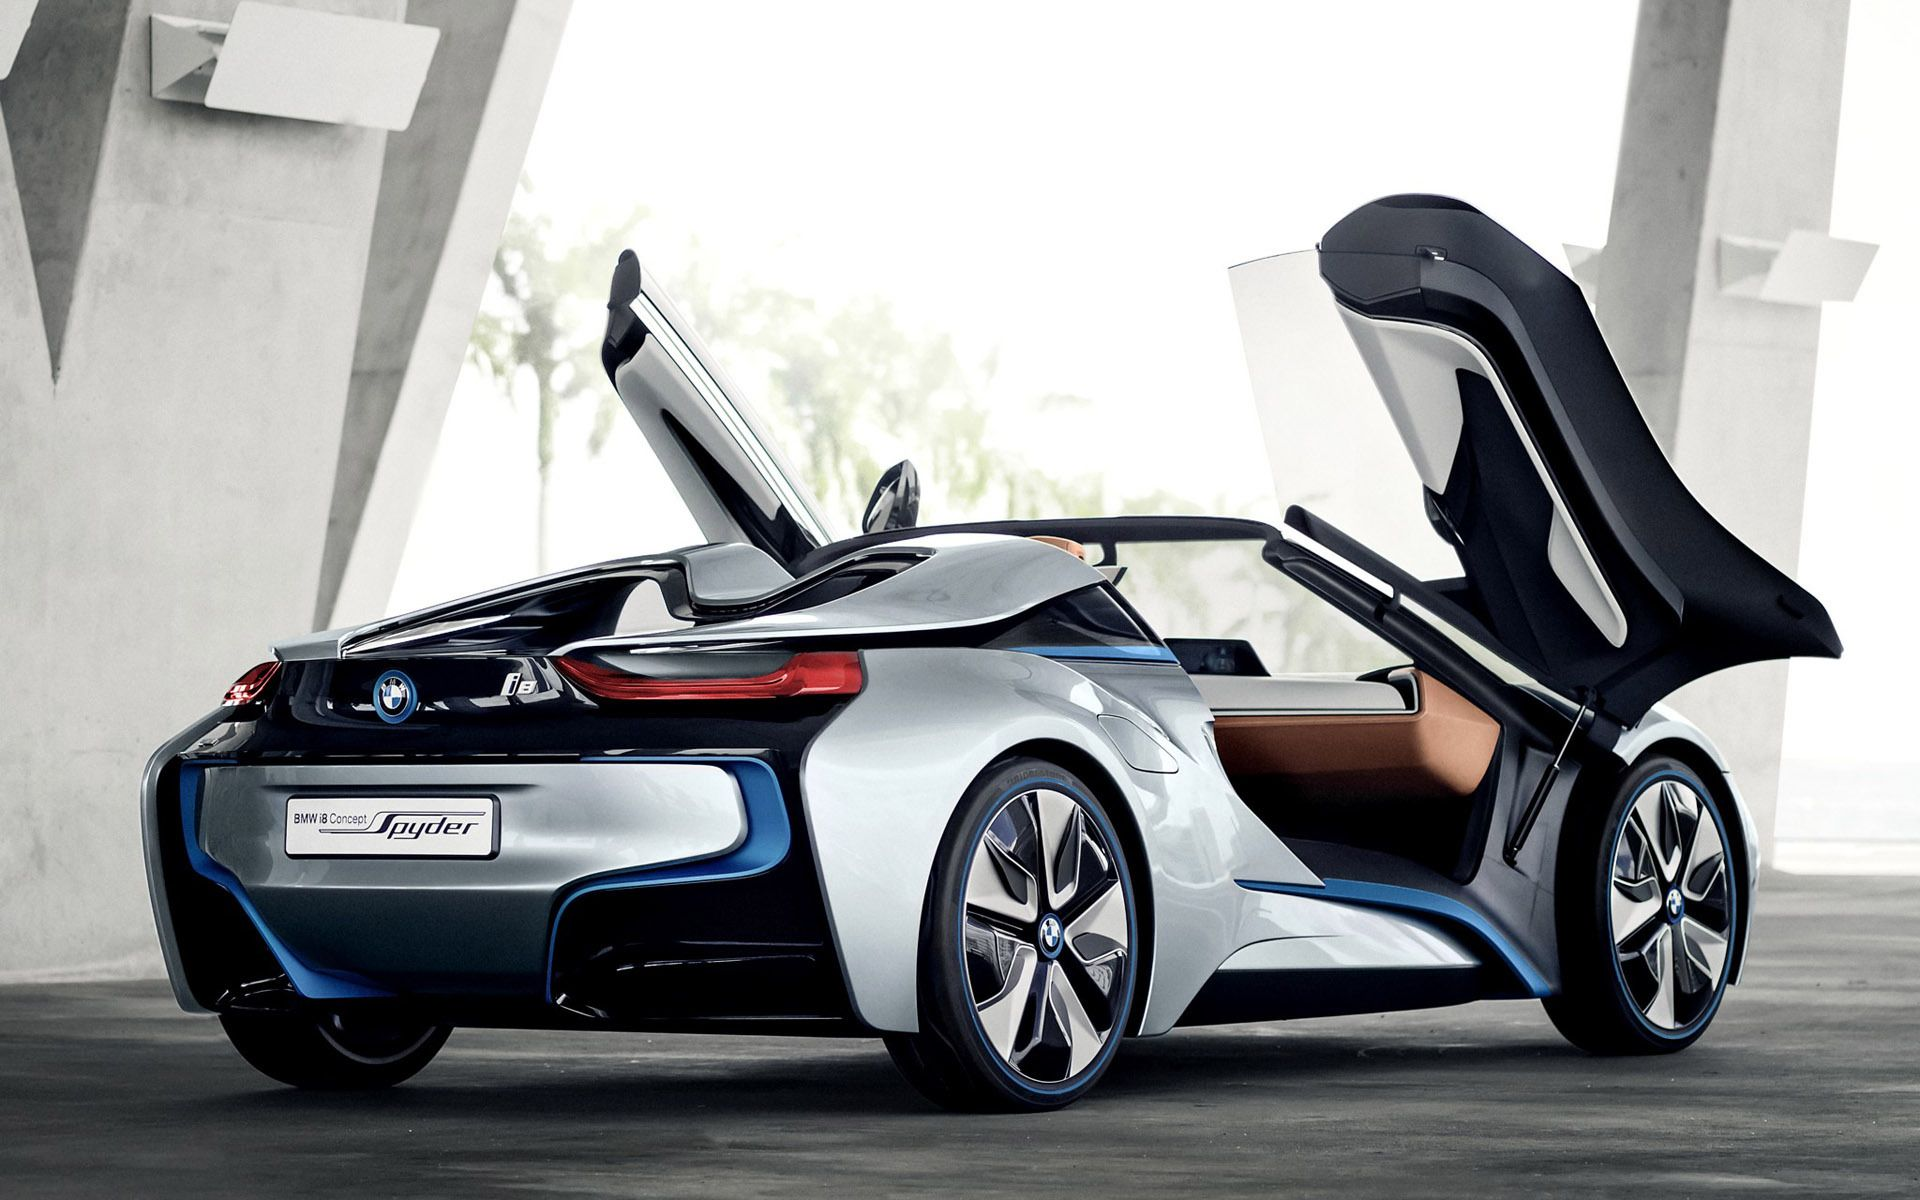 Bmw I Concept Spyder Rear Hd Wallpaper X Wallpapers Bmw I8 Bmw